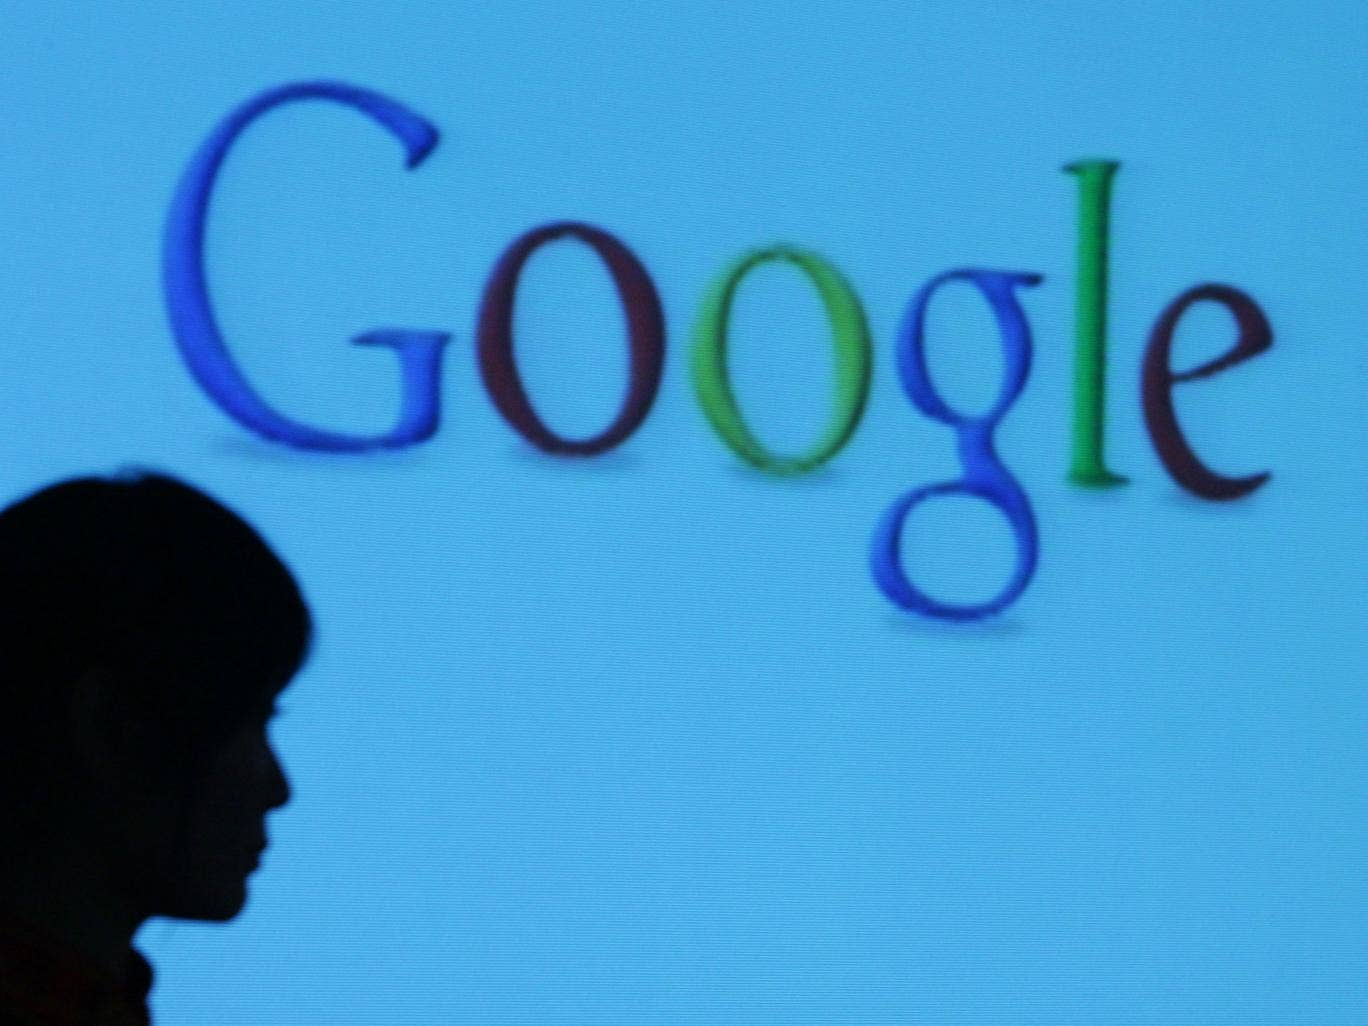 The Obama administration and some of the biggest US technology firms have agreed a tentative deal that would allow the companies, including Google, to tell the public more about how the US Government collects information on their users